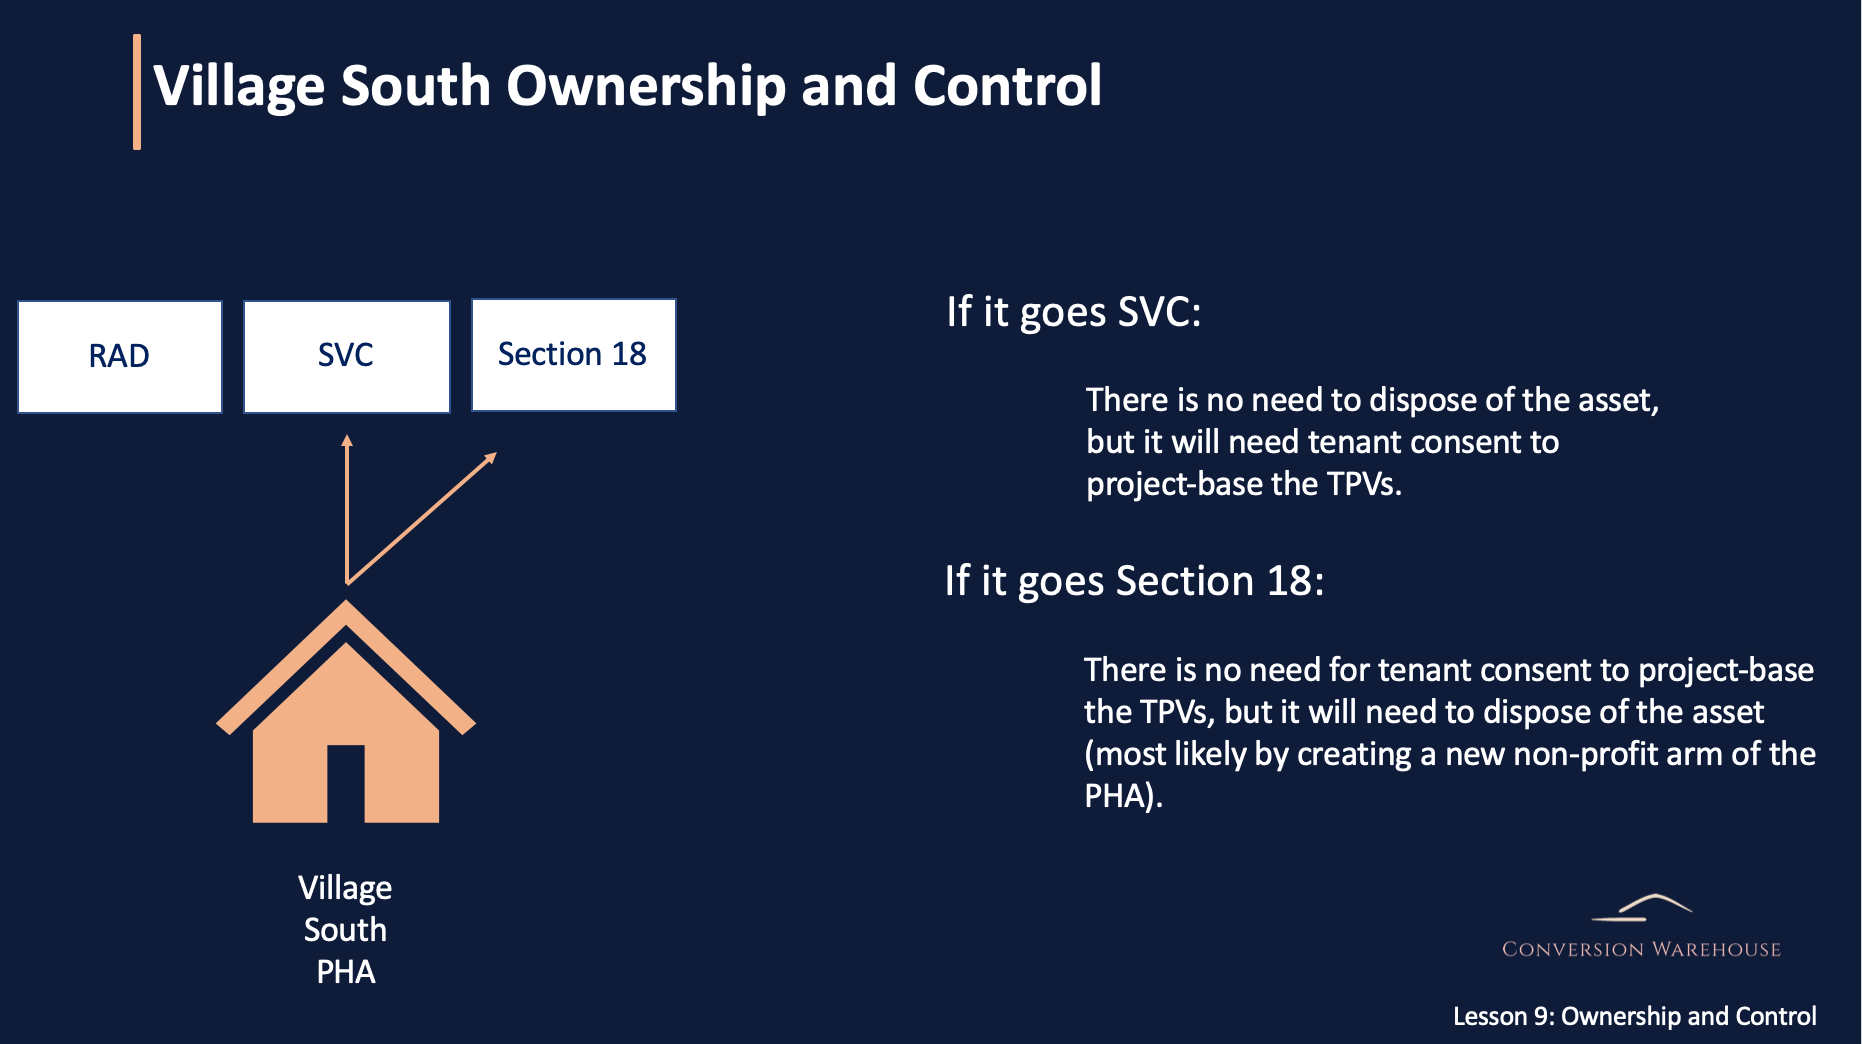 PowerPoint slide on ownership and control, with reference to a case study